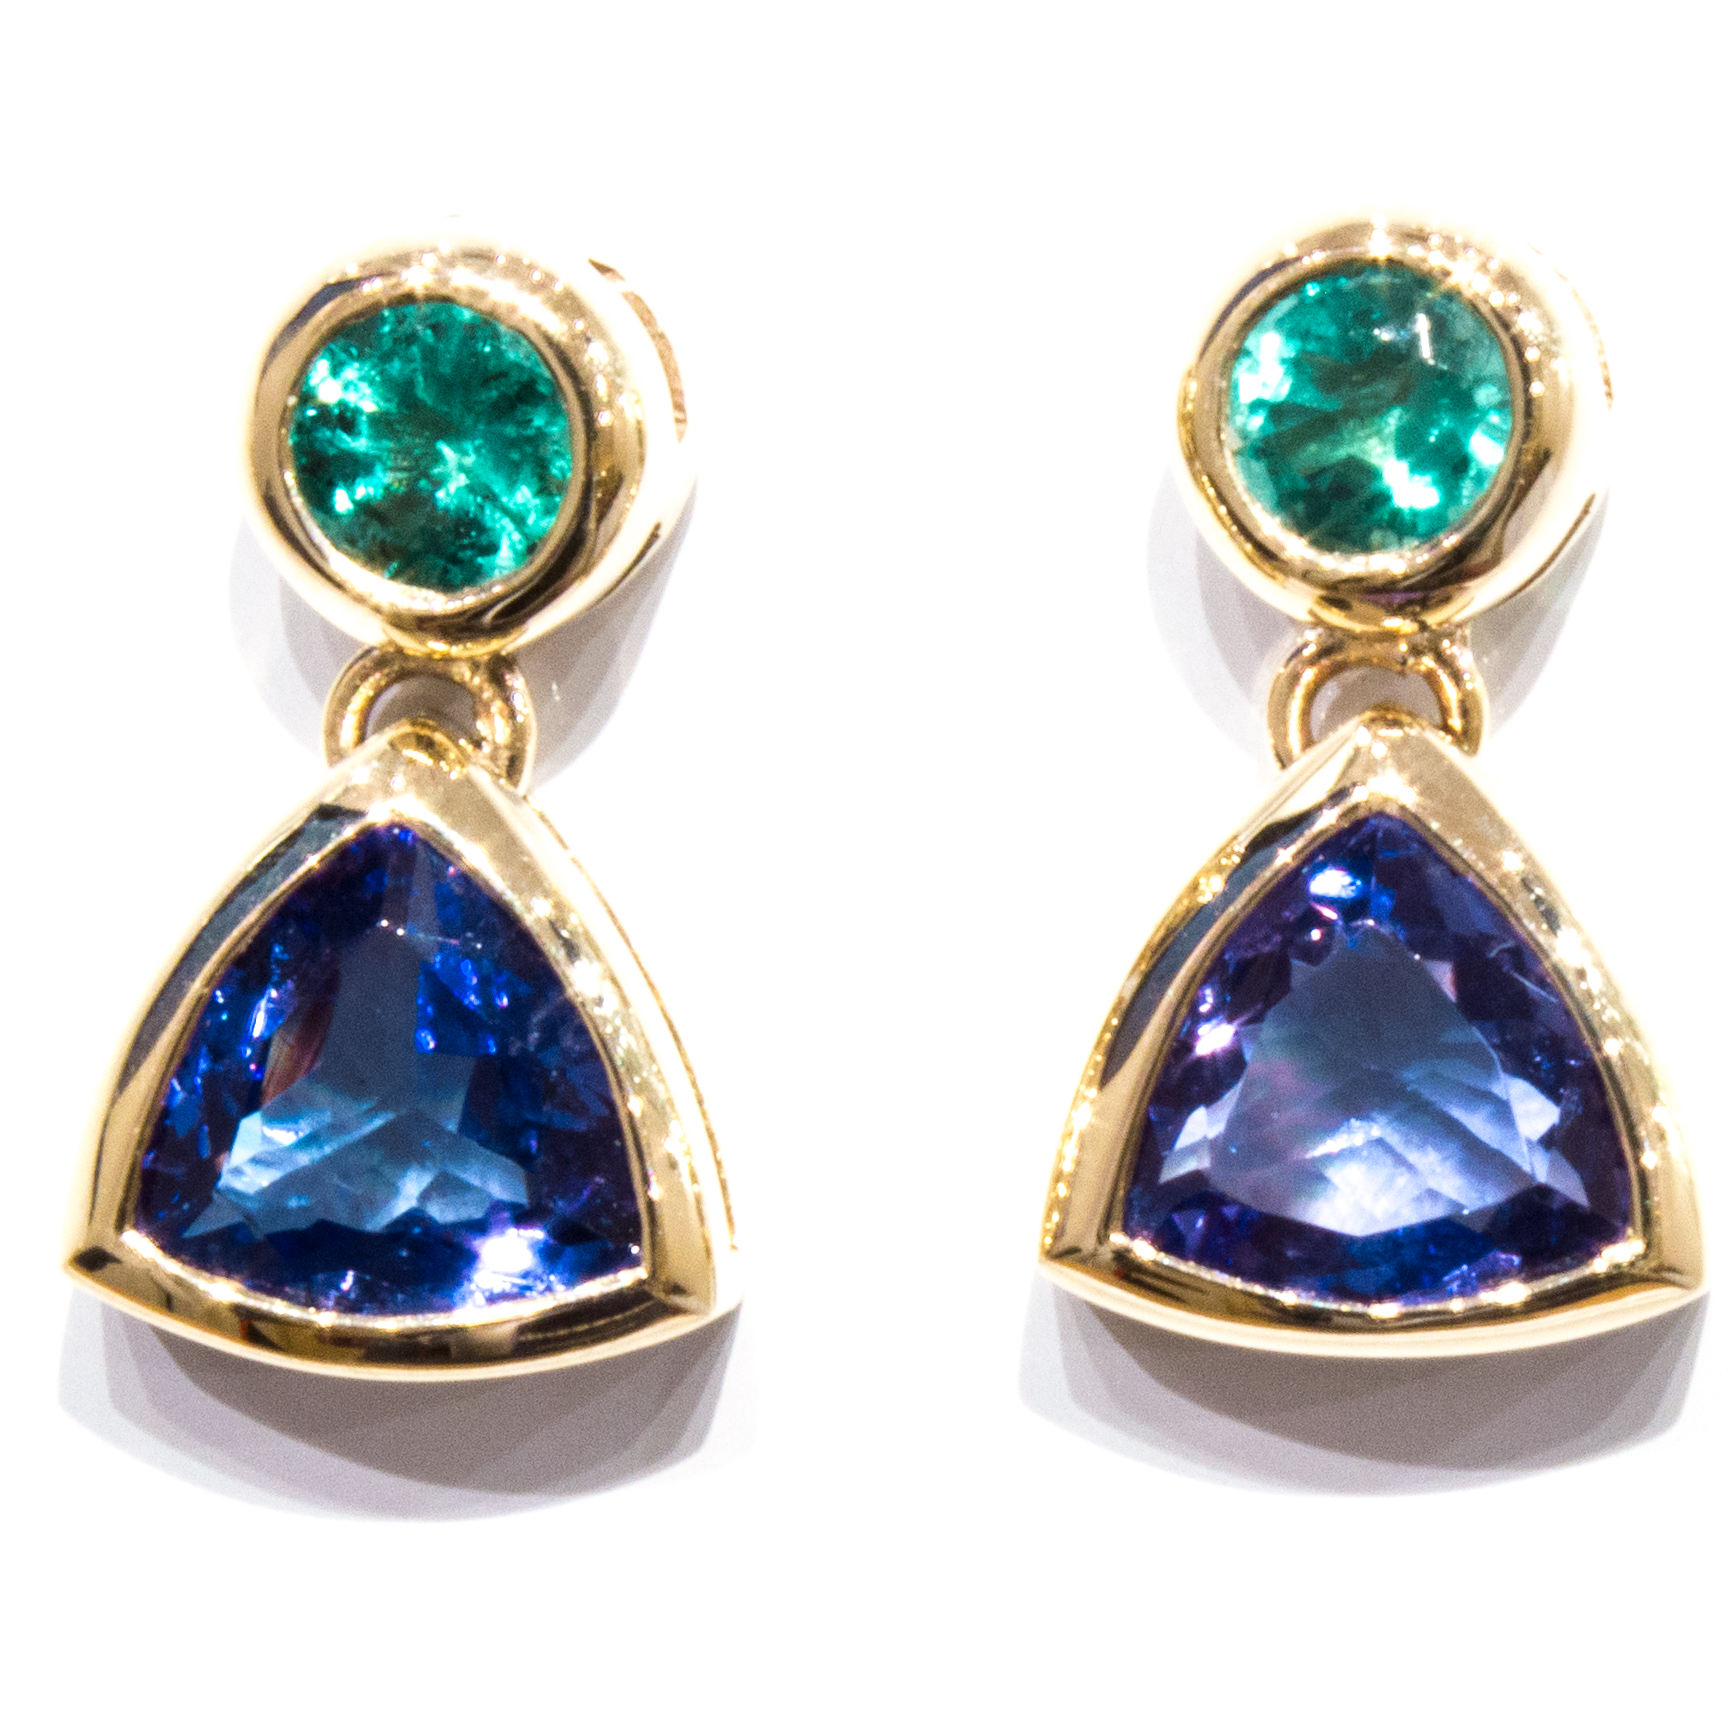 Emerald and Tanzanite Handmade Gold Earrings